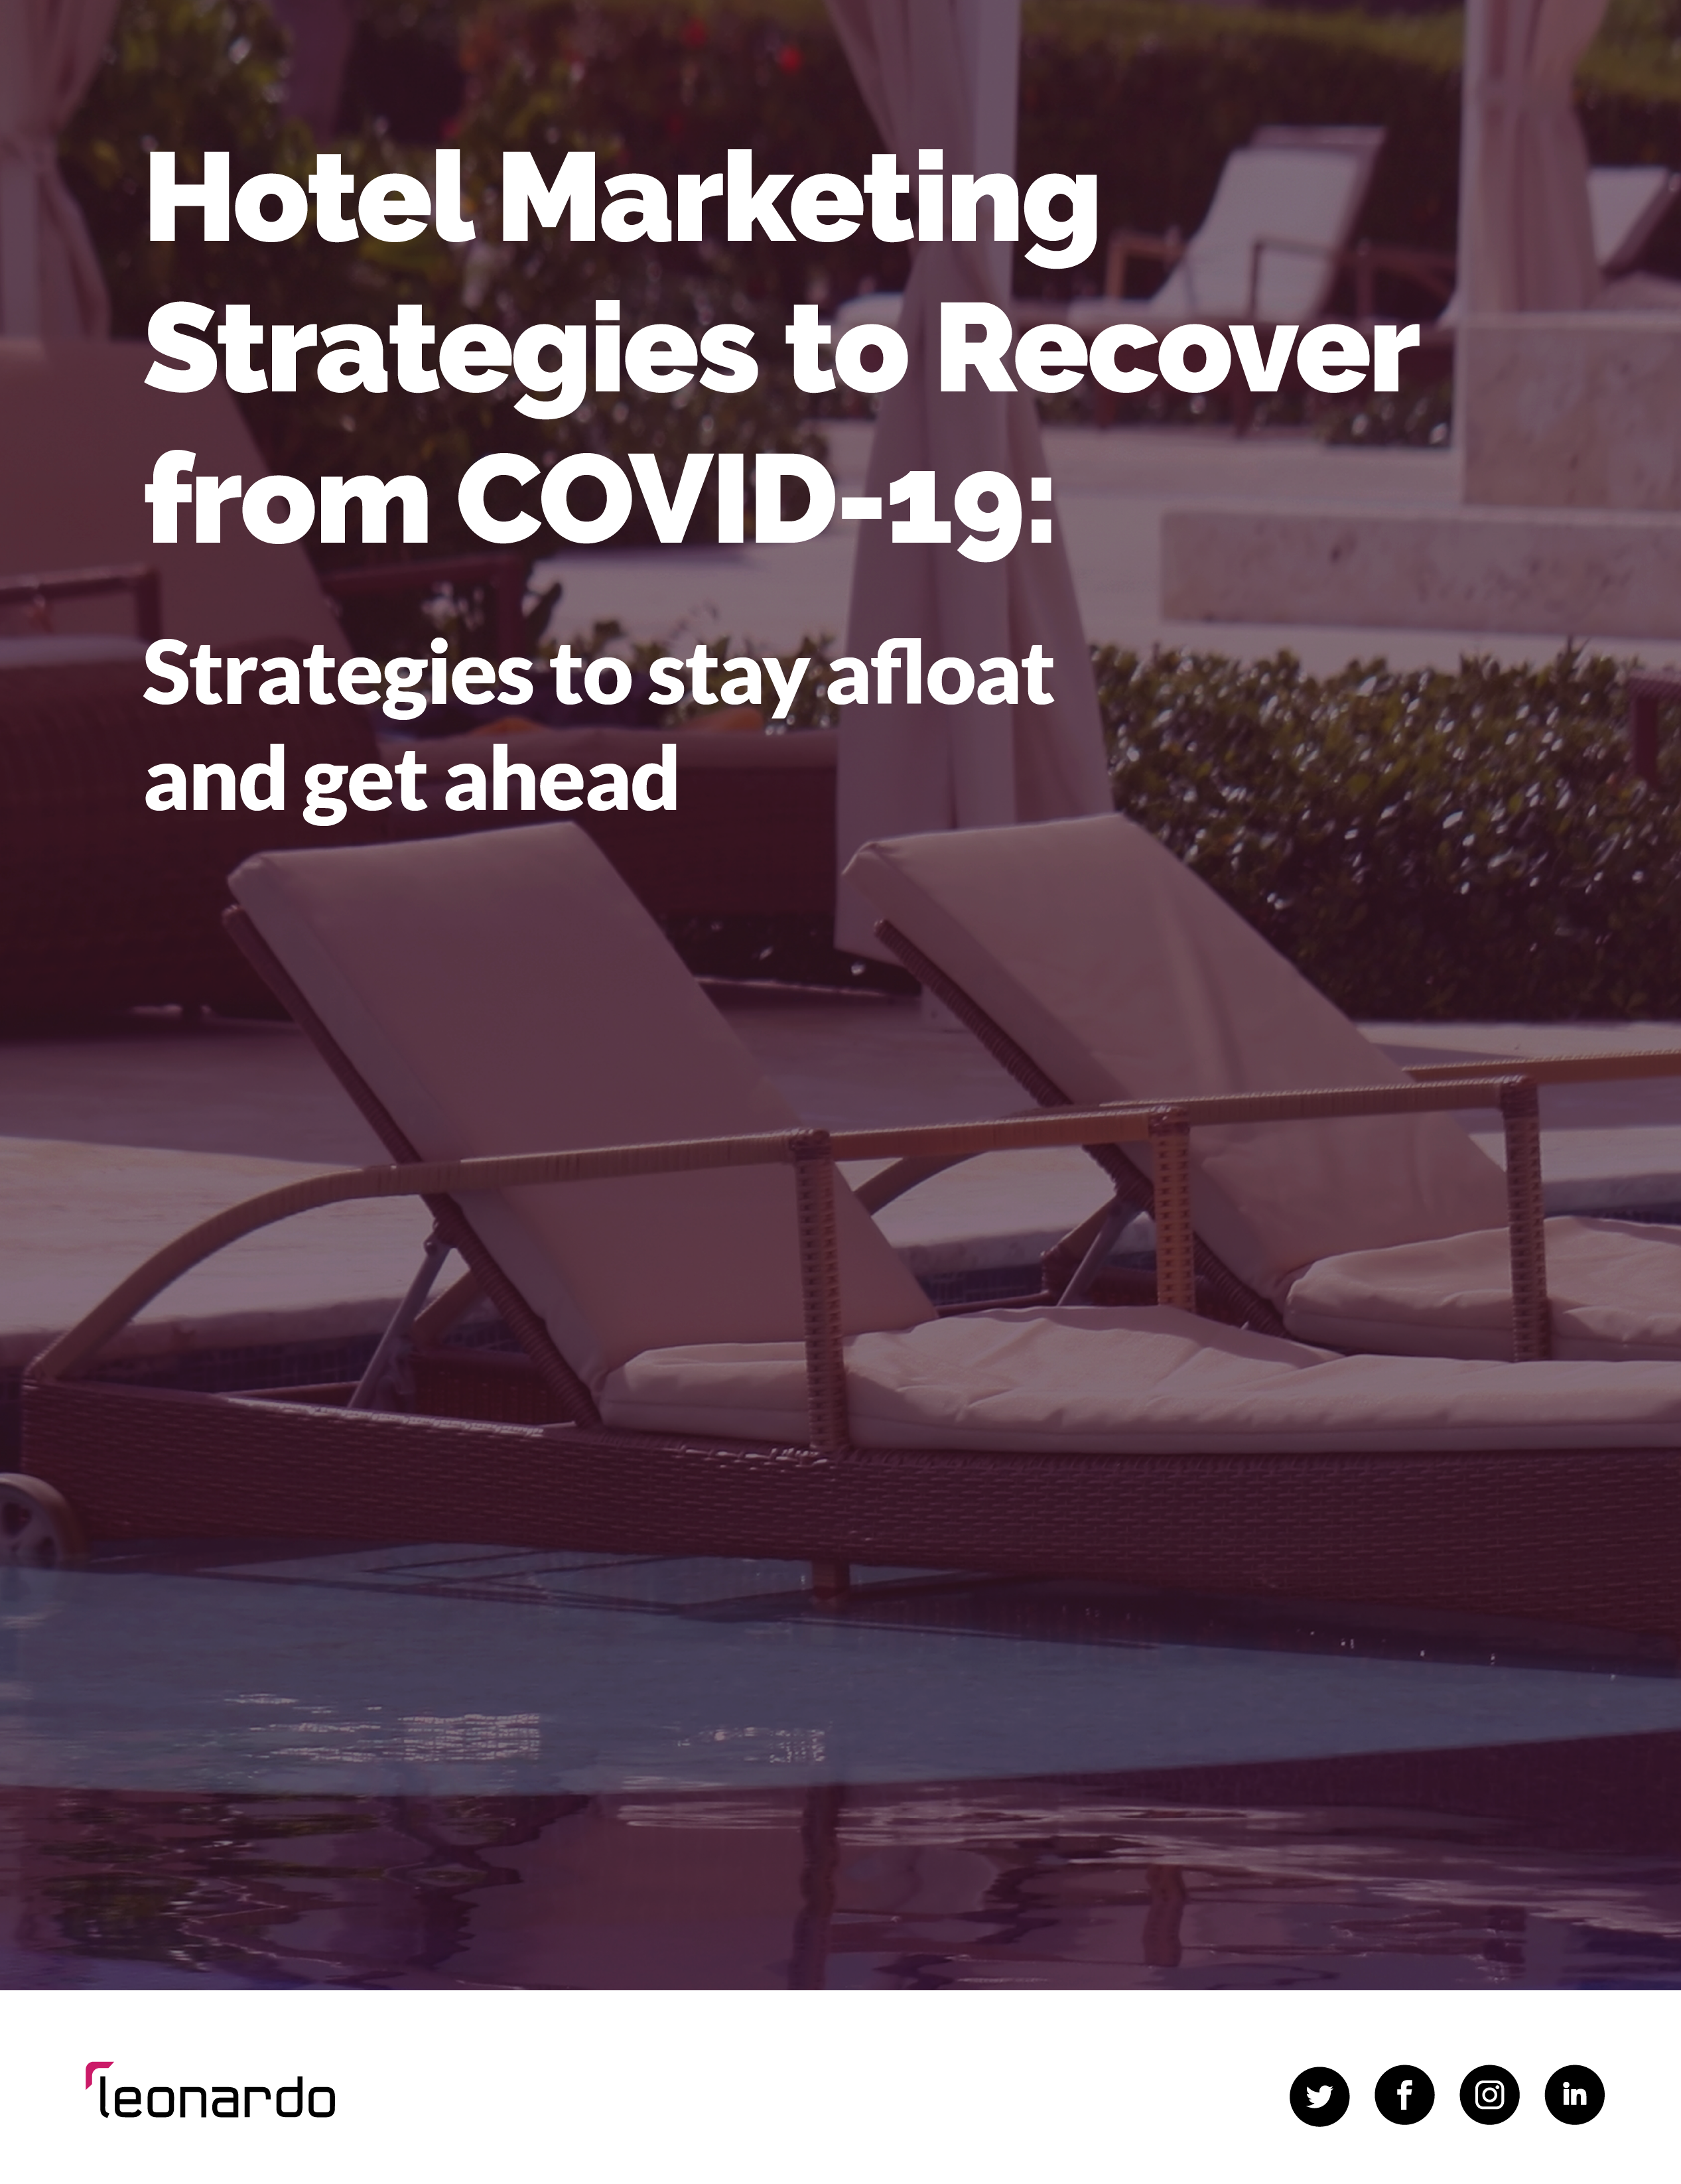 Hotel Marketing Strategies to Recover from COVID-19